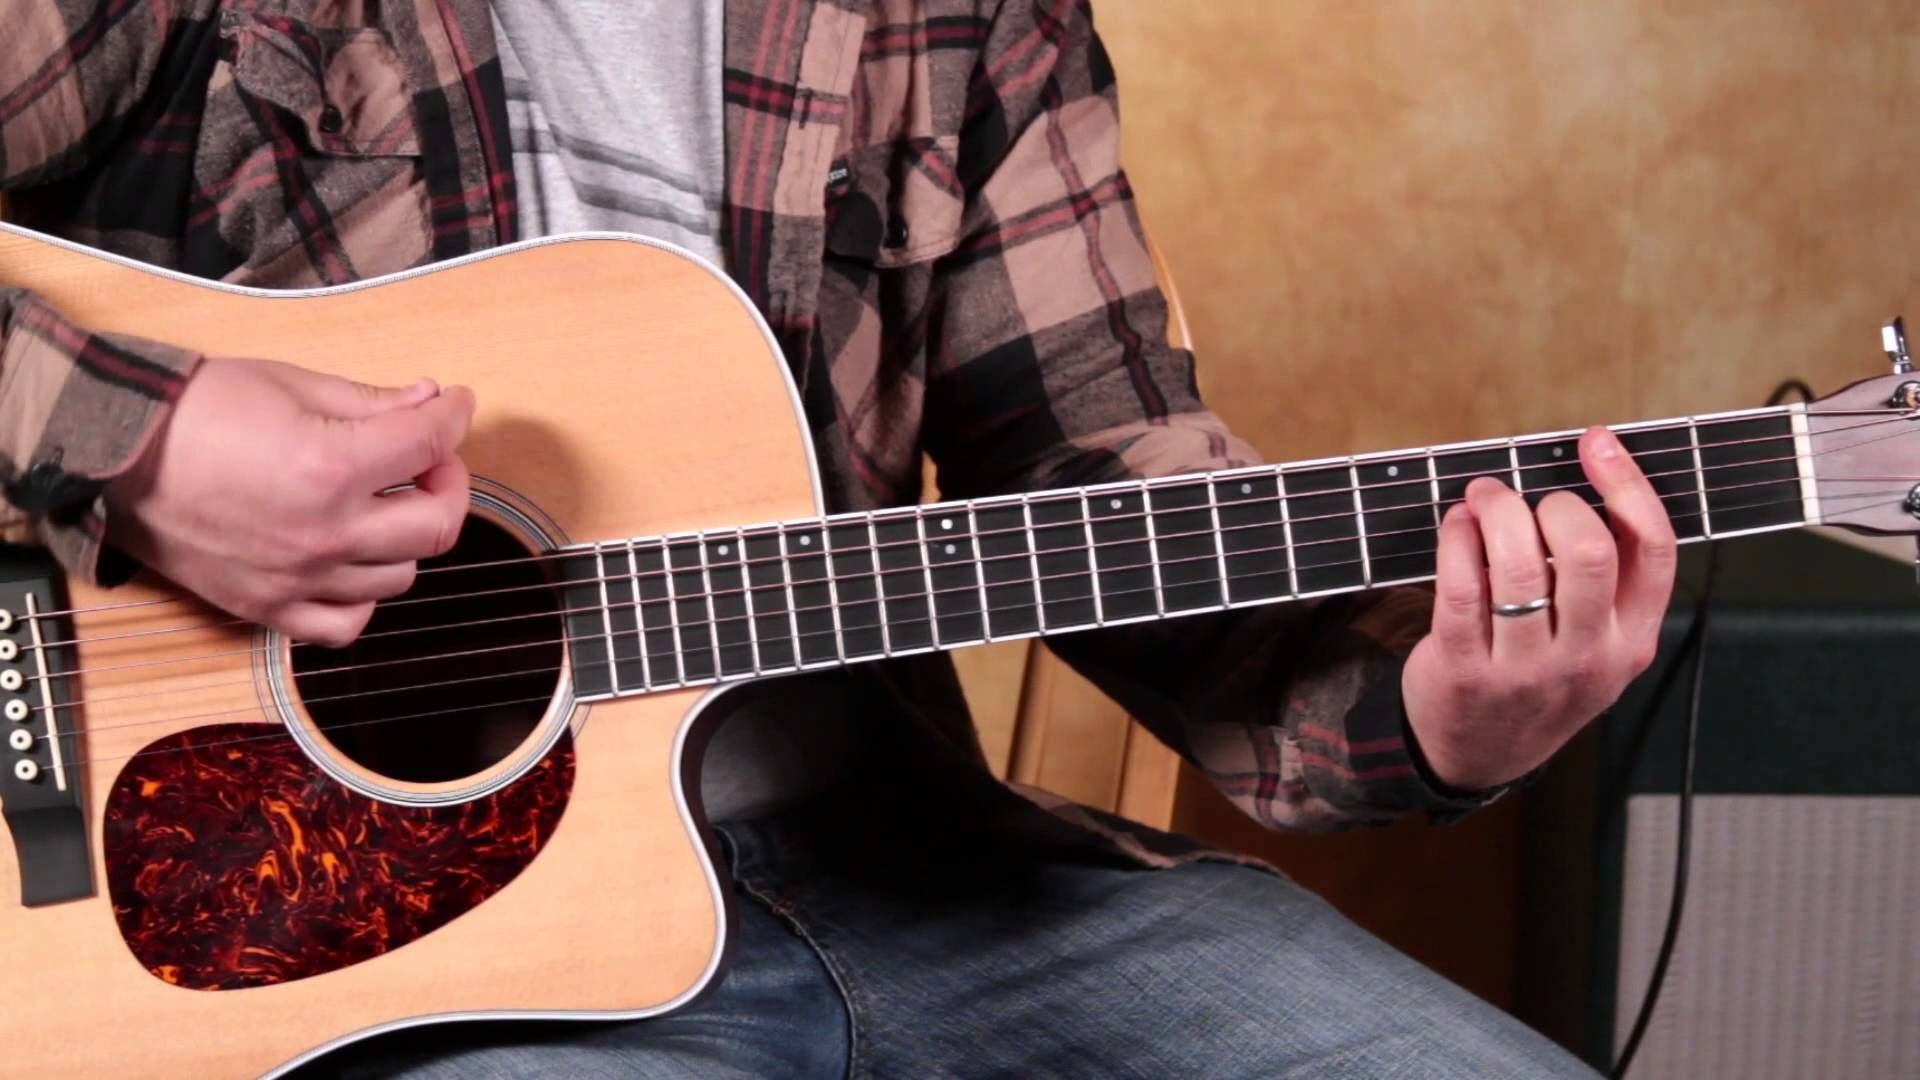 How To Play Let Her Go By Passenger Easy Acoustic Guitar Lessons